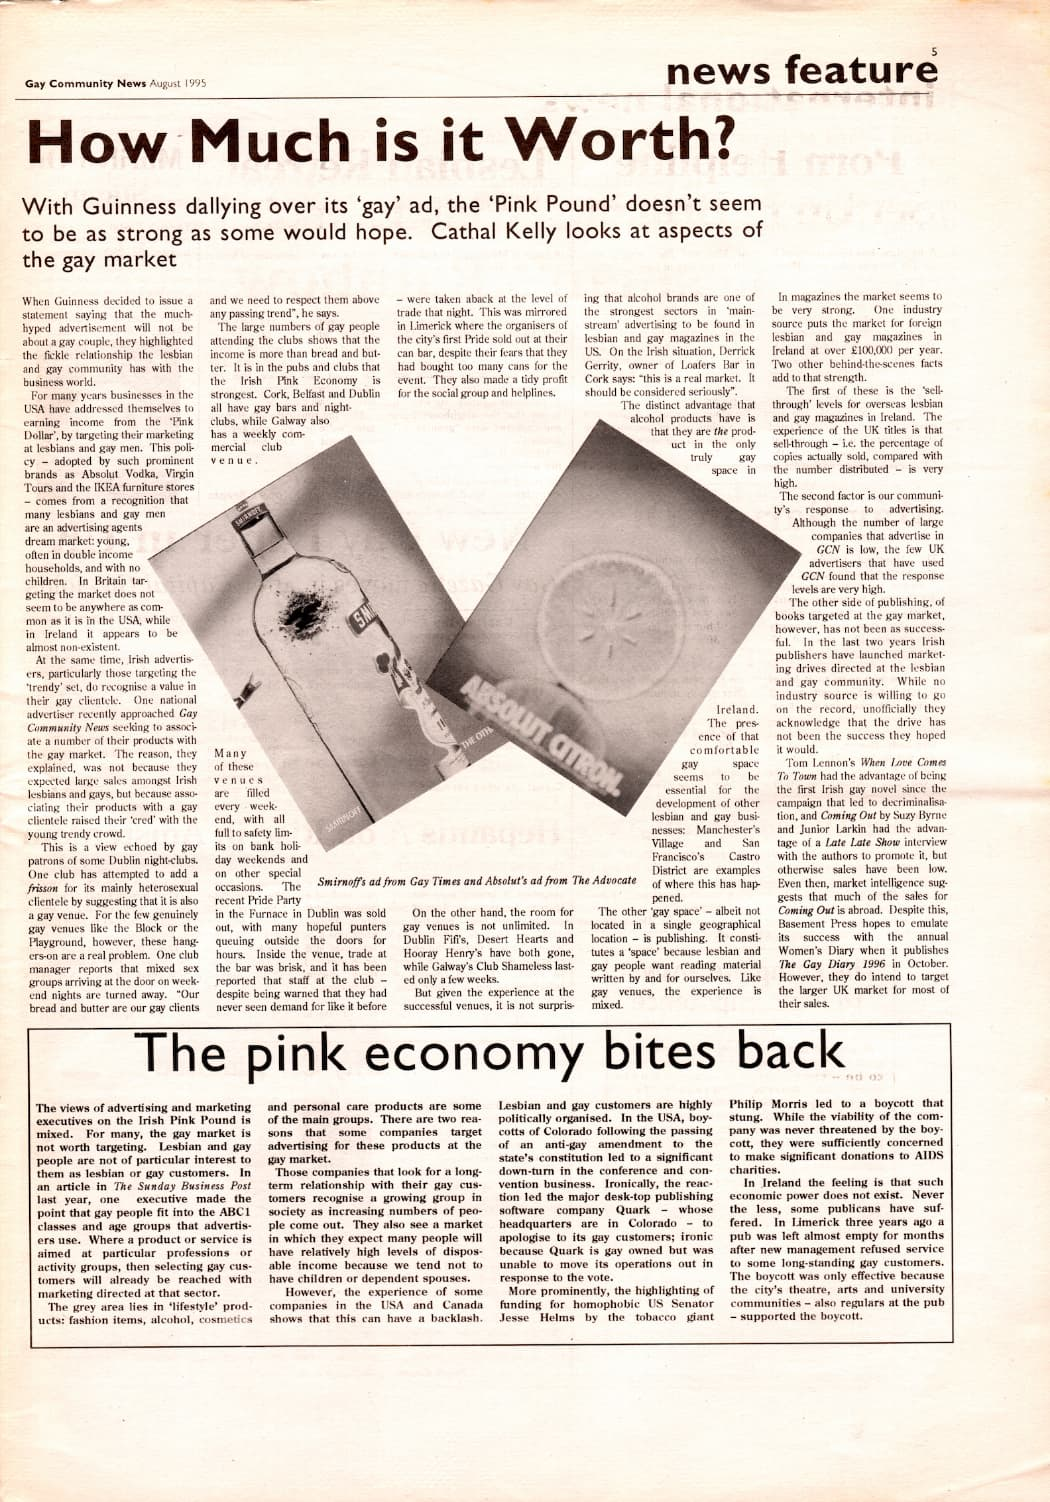 """Taking a look at the production process of GCN: Extract from GCN August 1995's news feature. The main headline reads """"How much is it worth? The pink economy bites back'."""